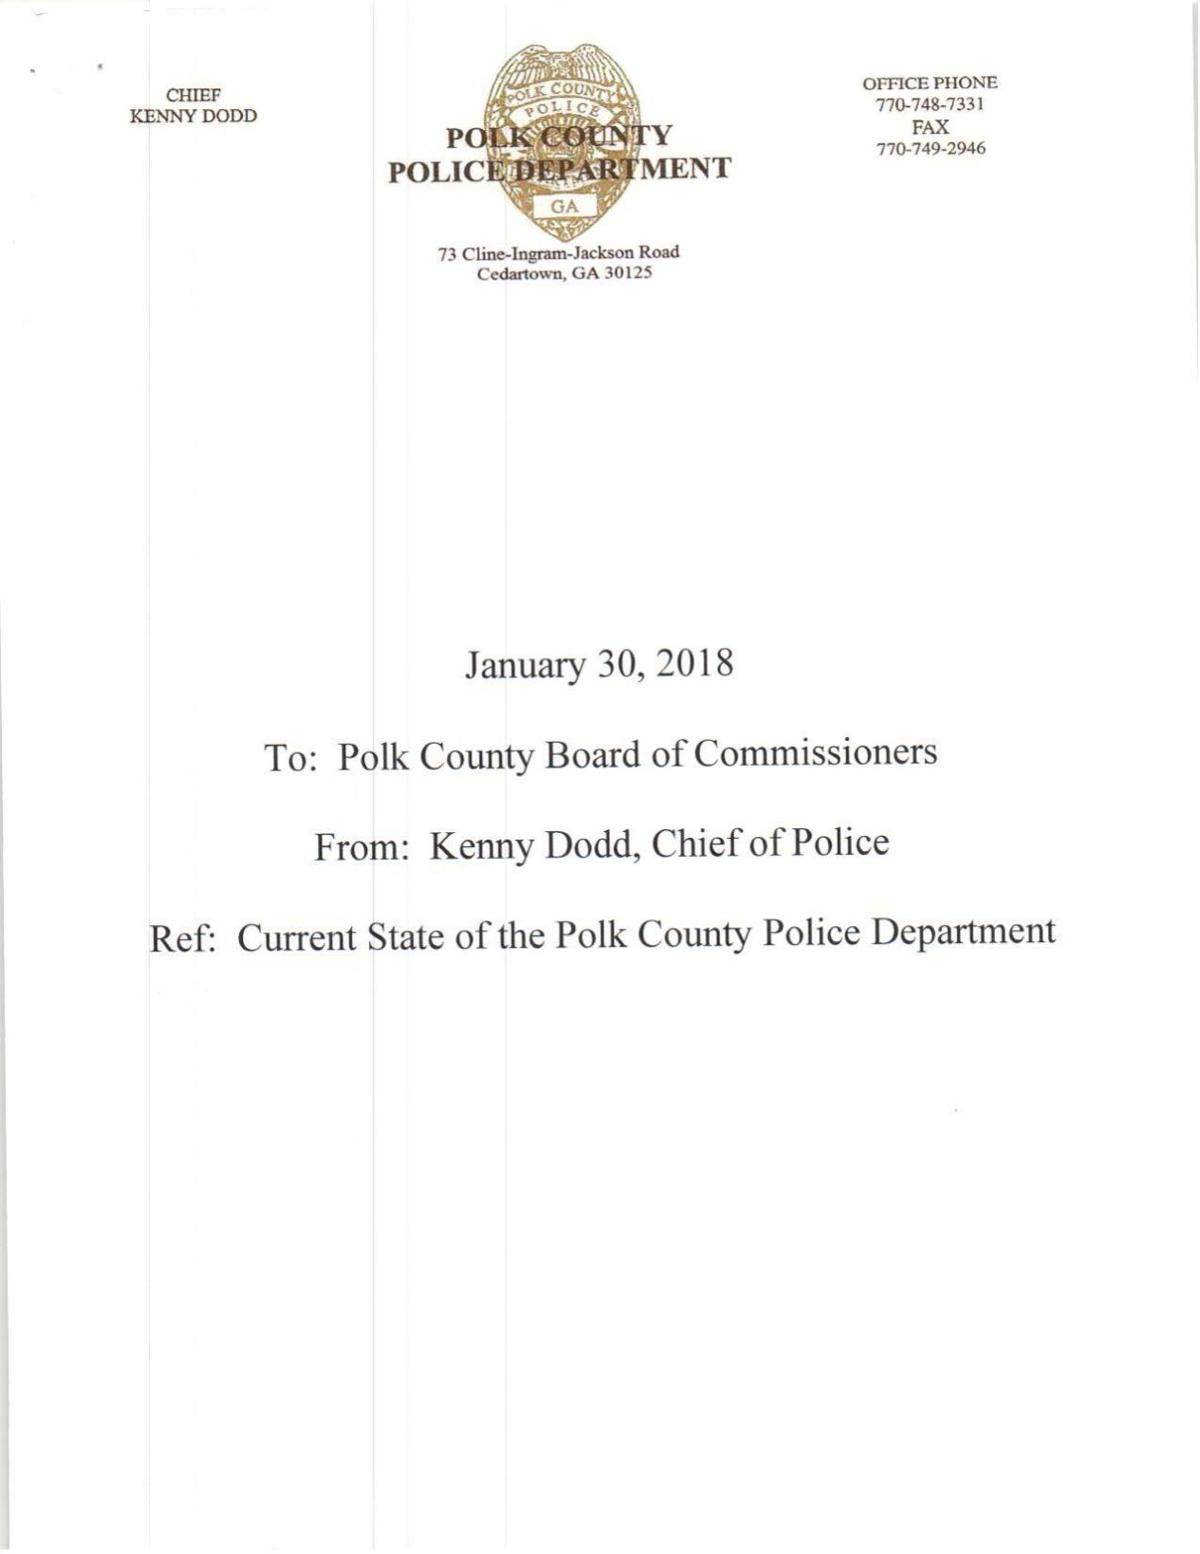 Polk County Police Department Annual Report - Jan. 30, 2018